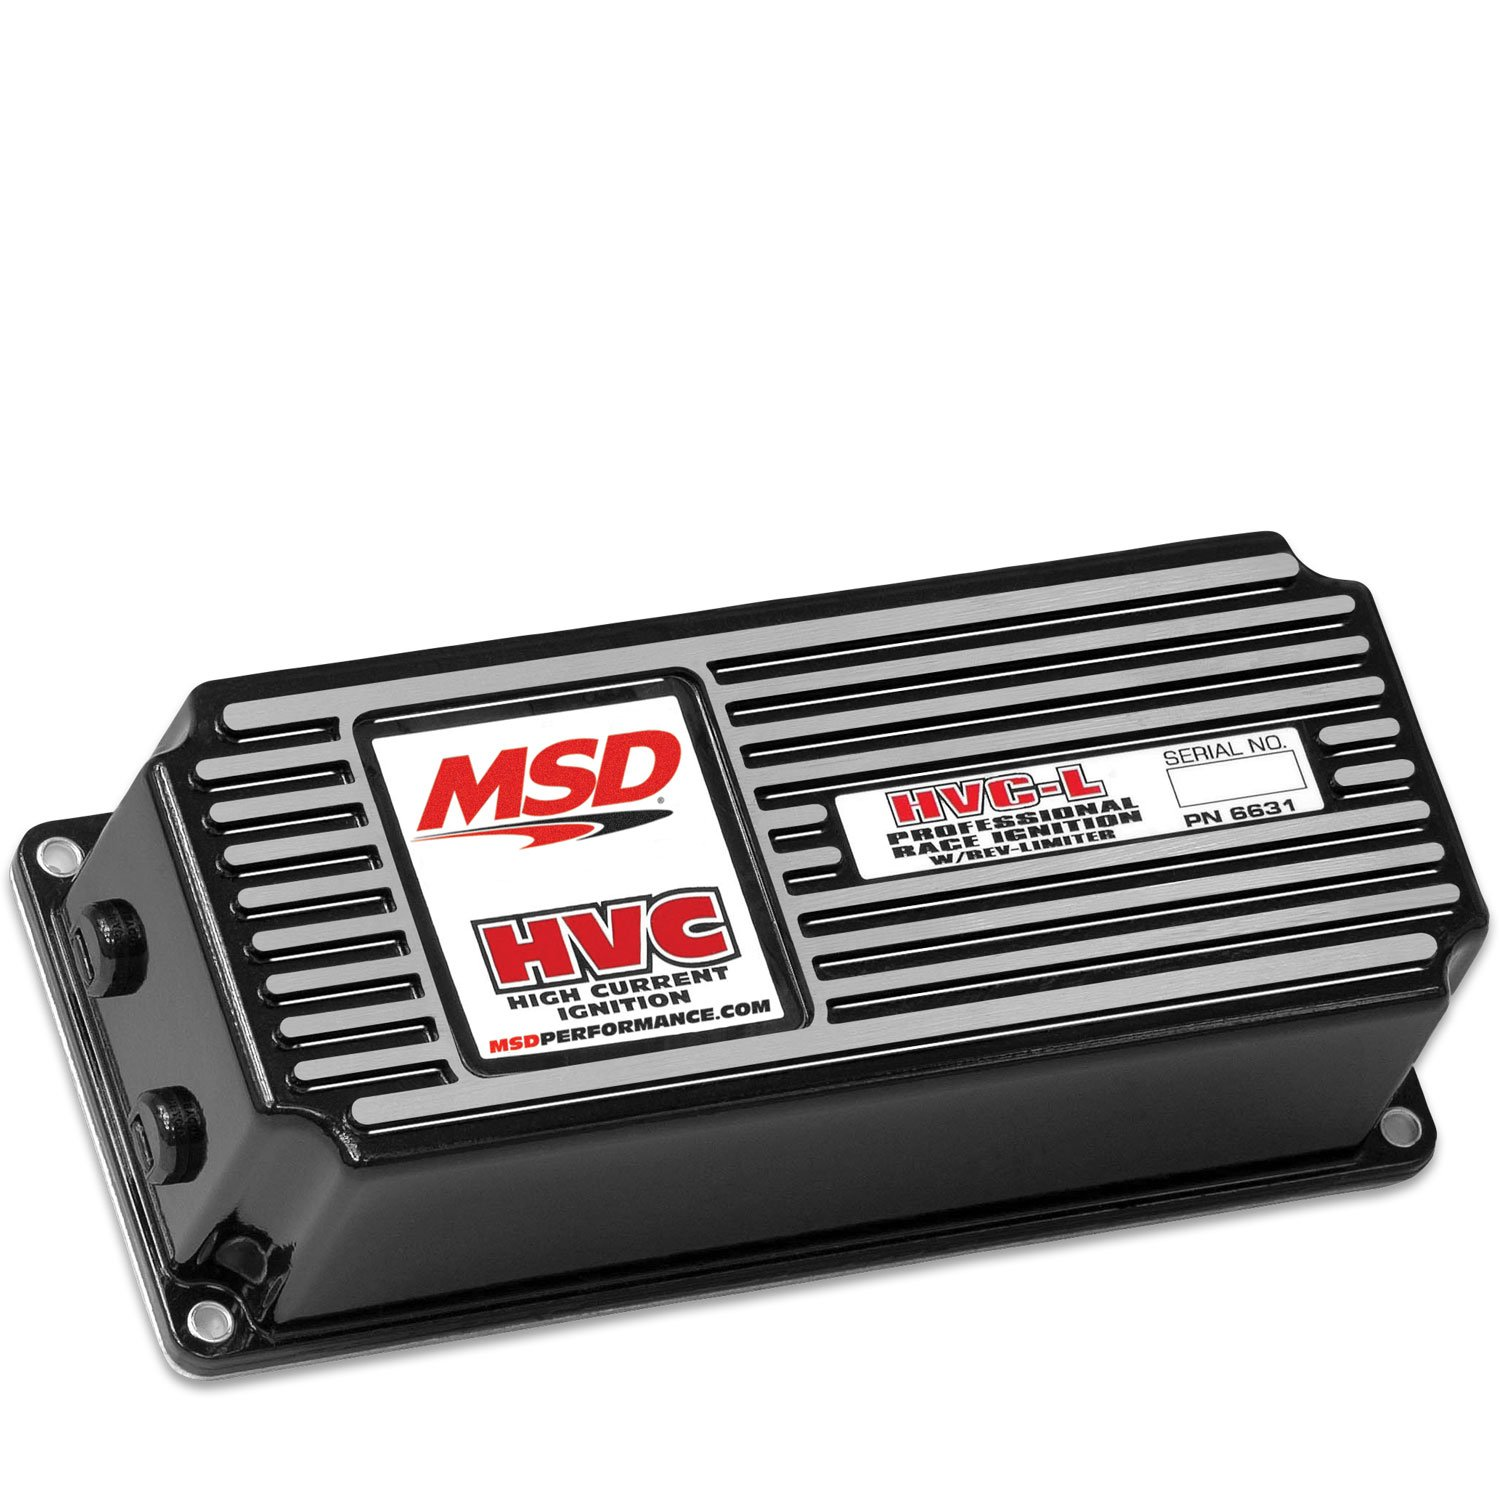 MSD 6 HVC, Professional Race with Fast Rev Limiter